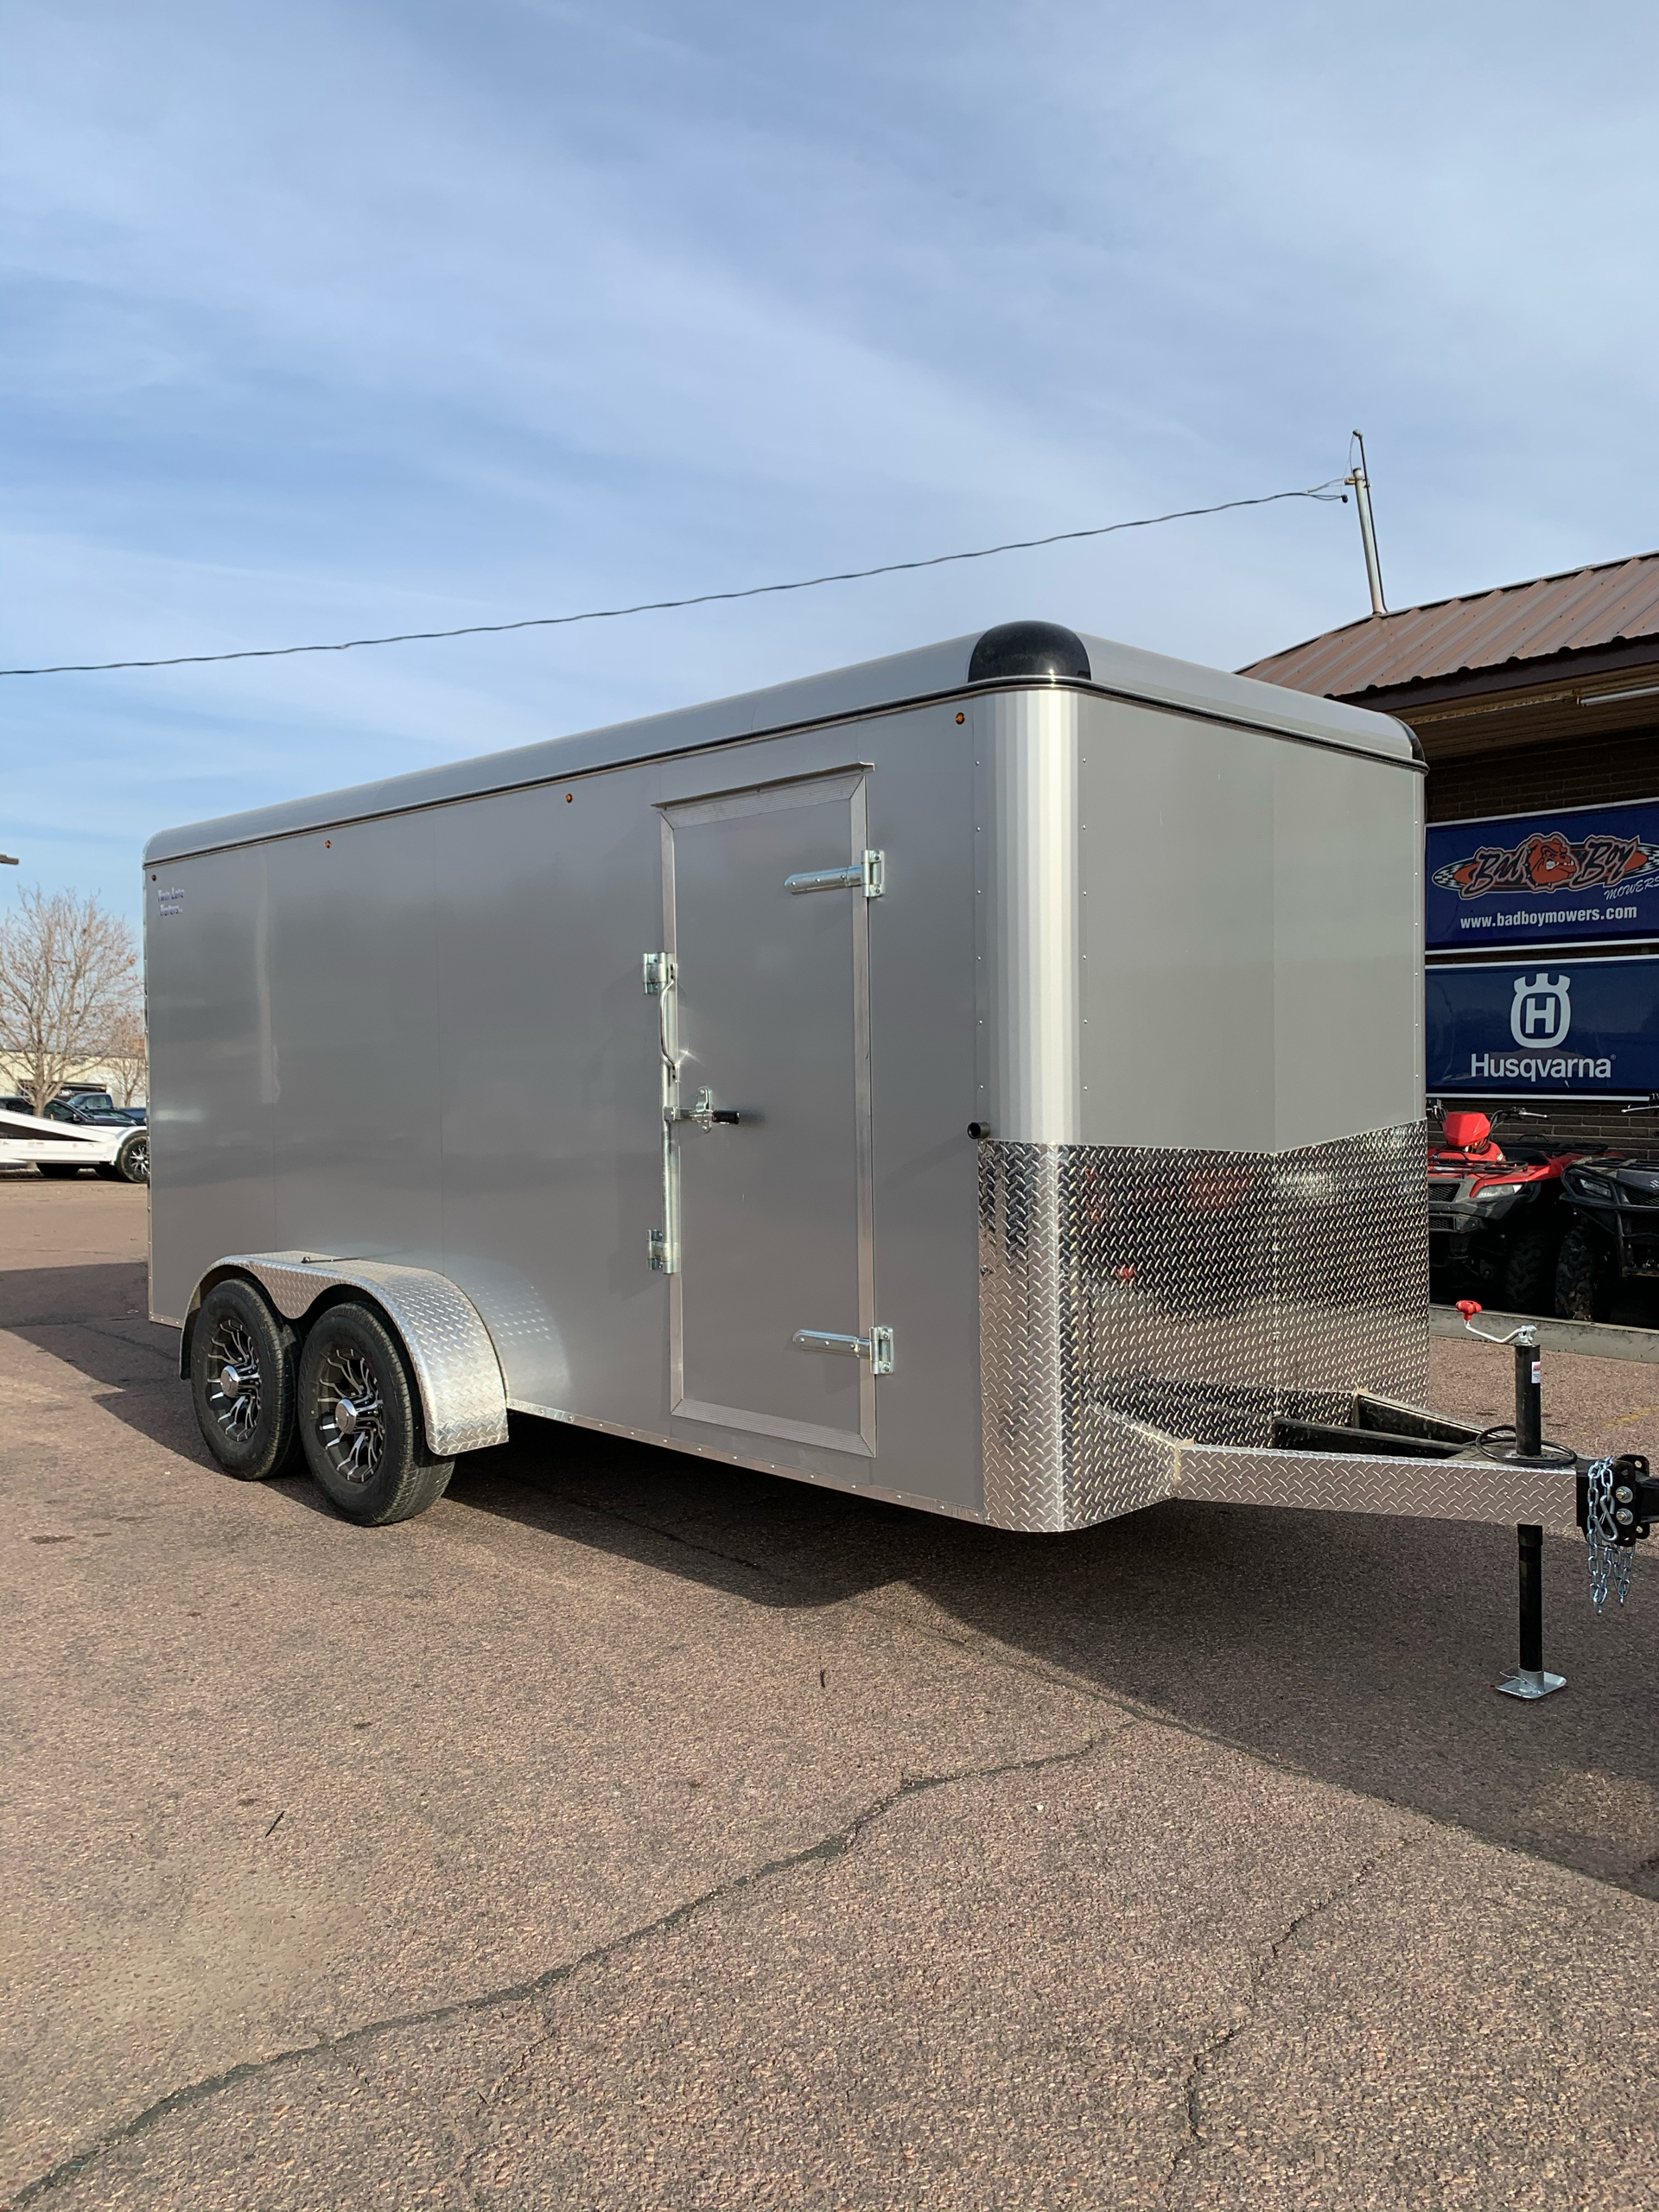 2021 Twin Lake Trailers LLC ENCLOSED 7X16 in Sioux Falls, South Dakota - Photo 1